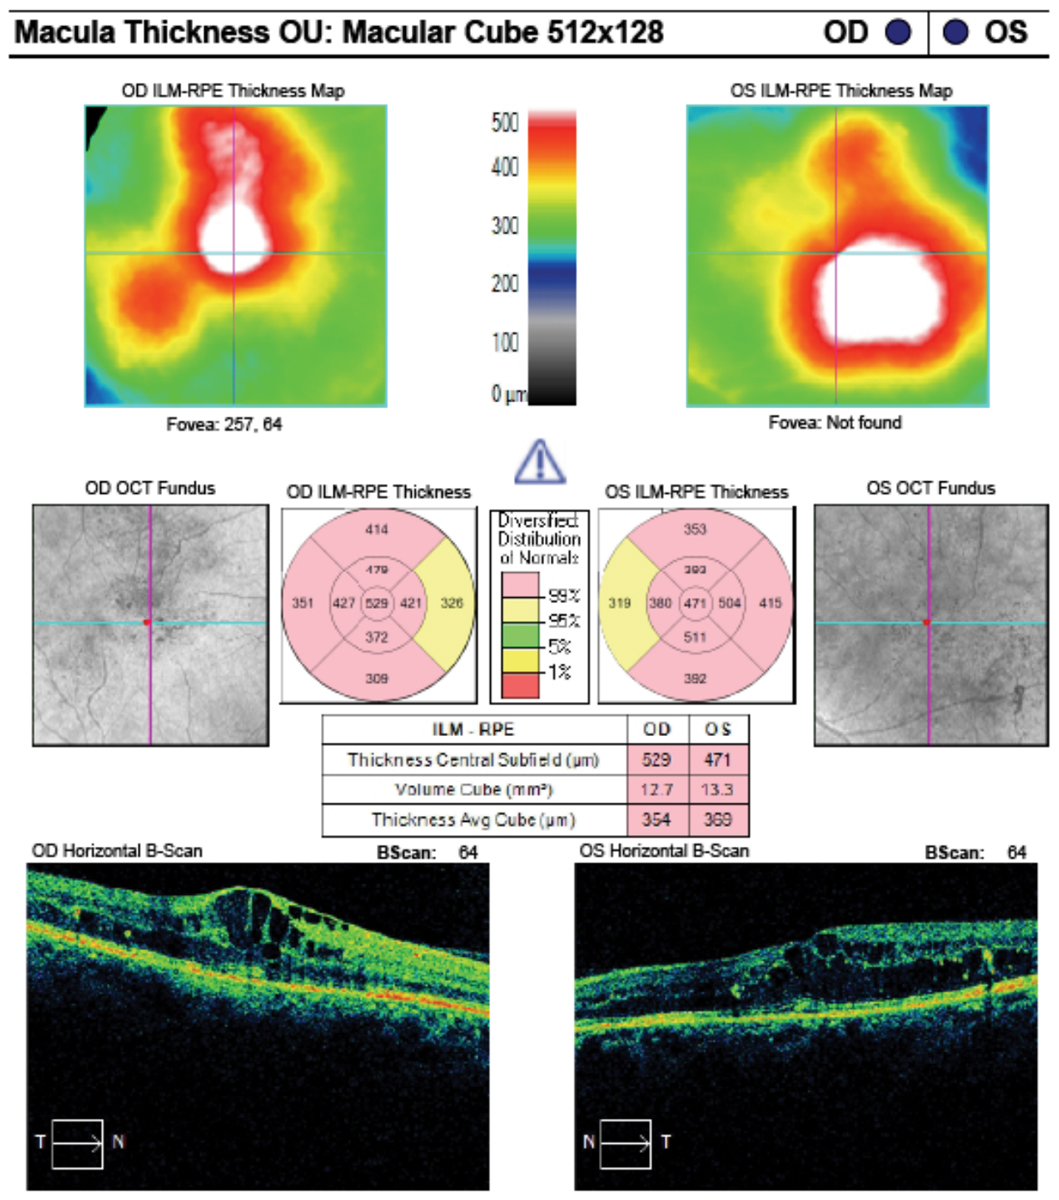 These macular cube analysis images of the same patient from the previous page shows clinically significant macular edema in both eyes.